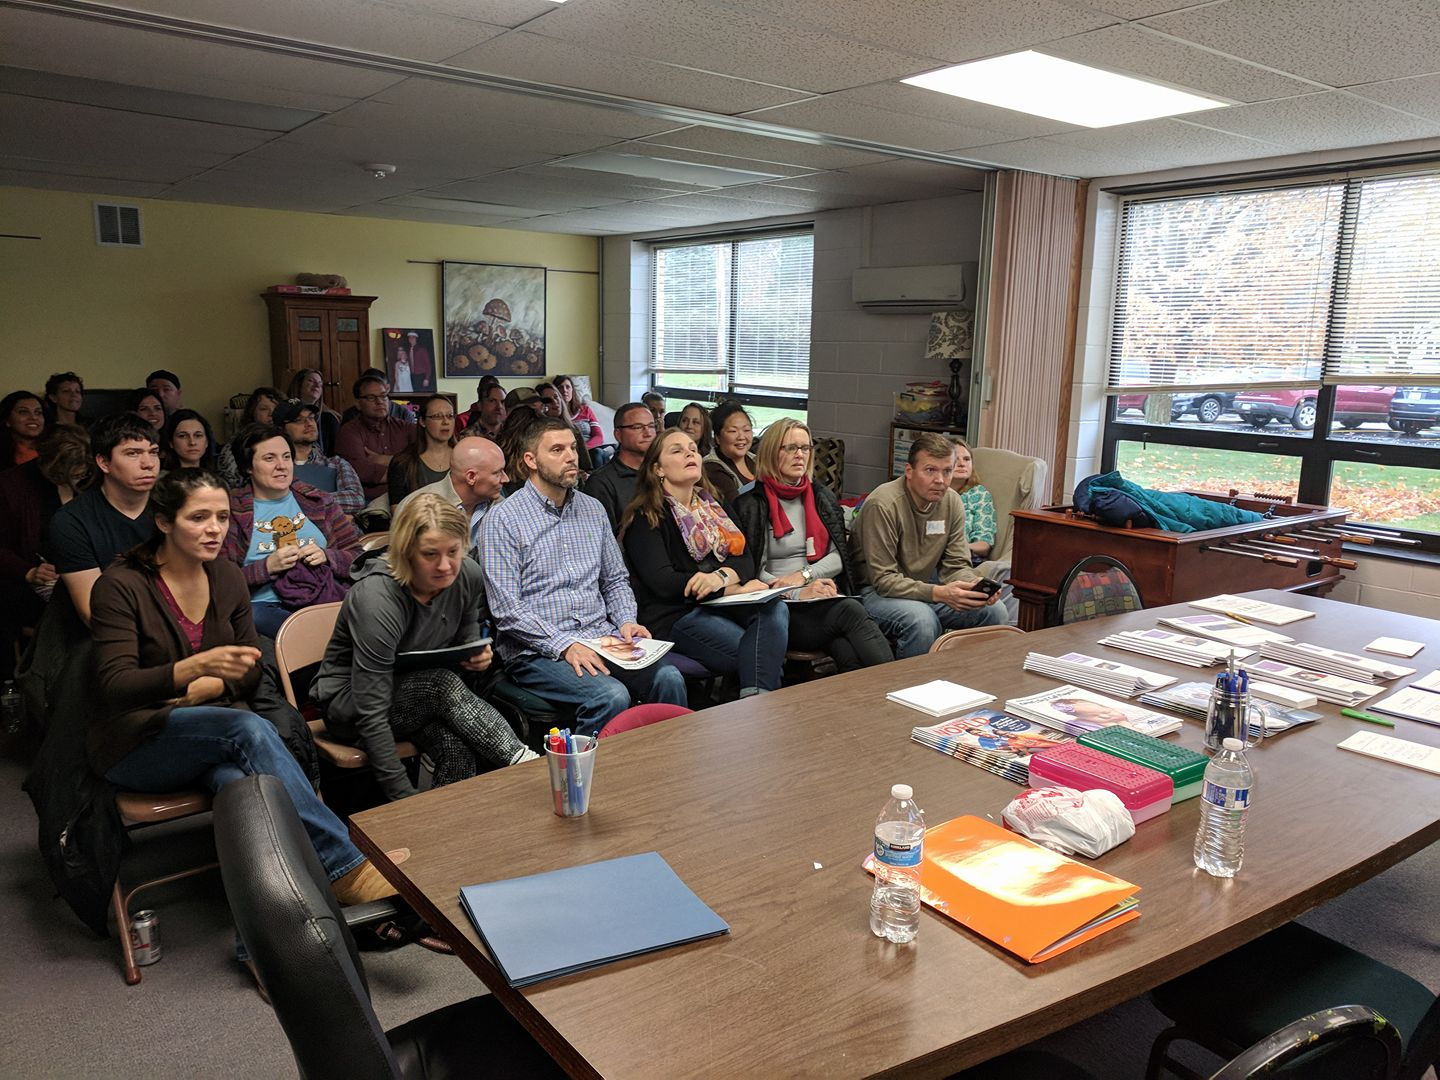 Parents attend the parent portion of our Sibling Workshop at our State Headquarters in West Allis.